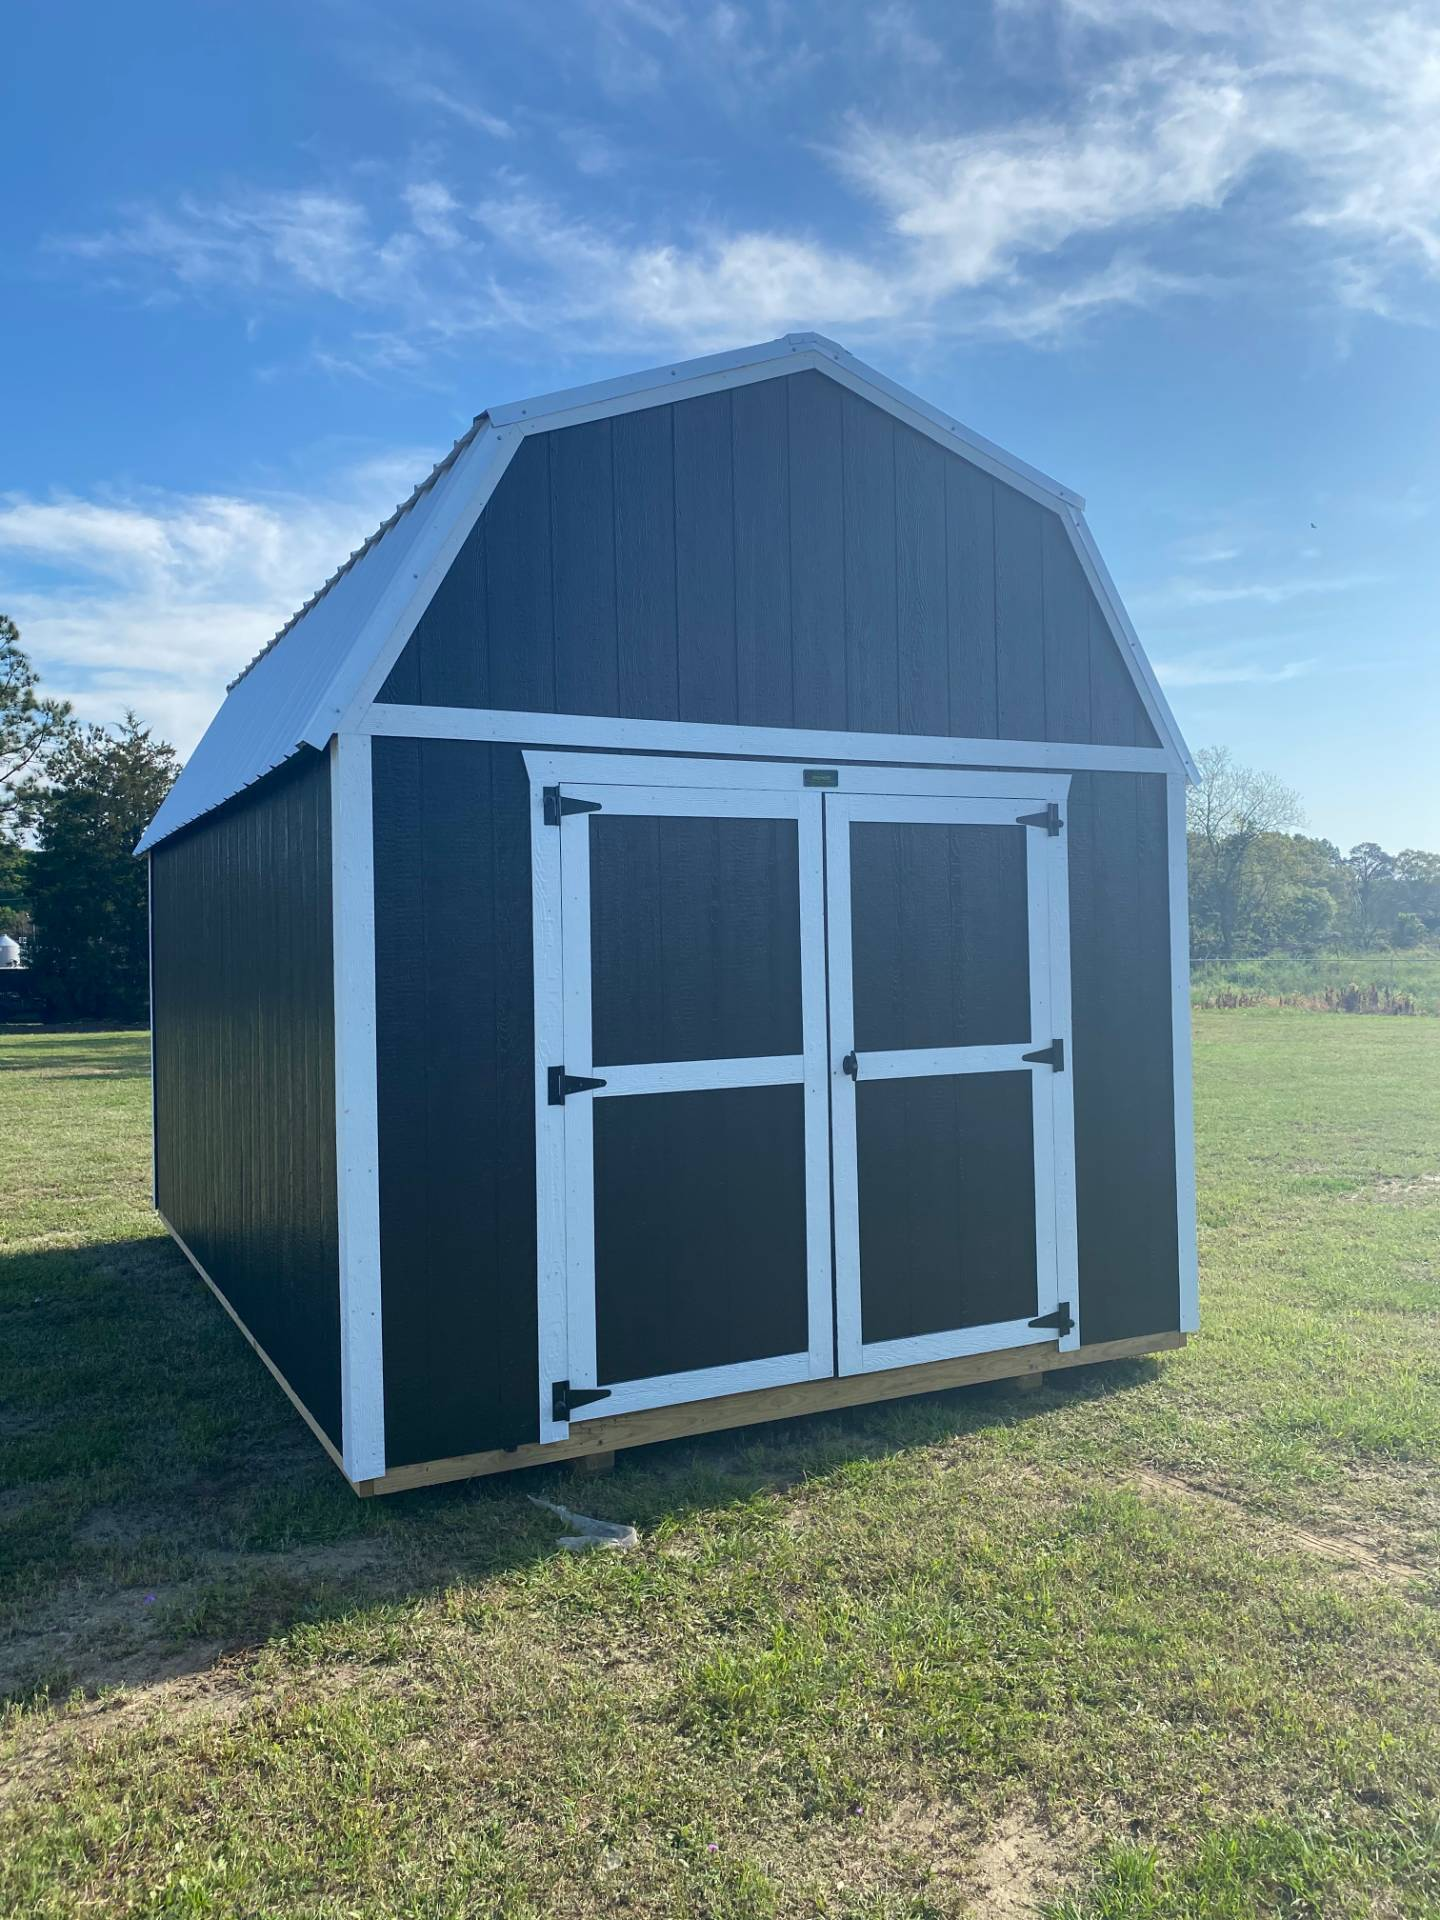 2019 PREMIER PORTABLE BUILDINGS ULB- URETHANE LOFTED BARN in Tifton, Georgia - Photo 1